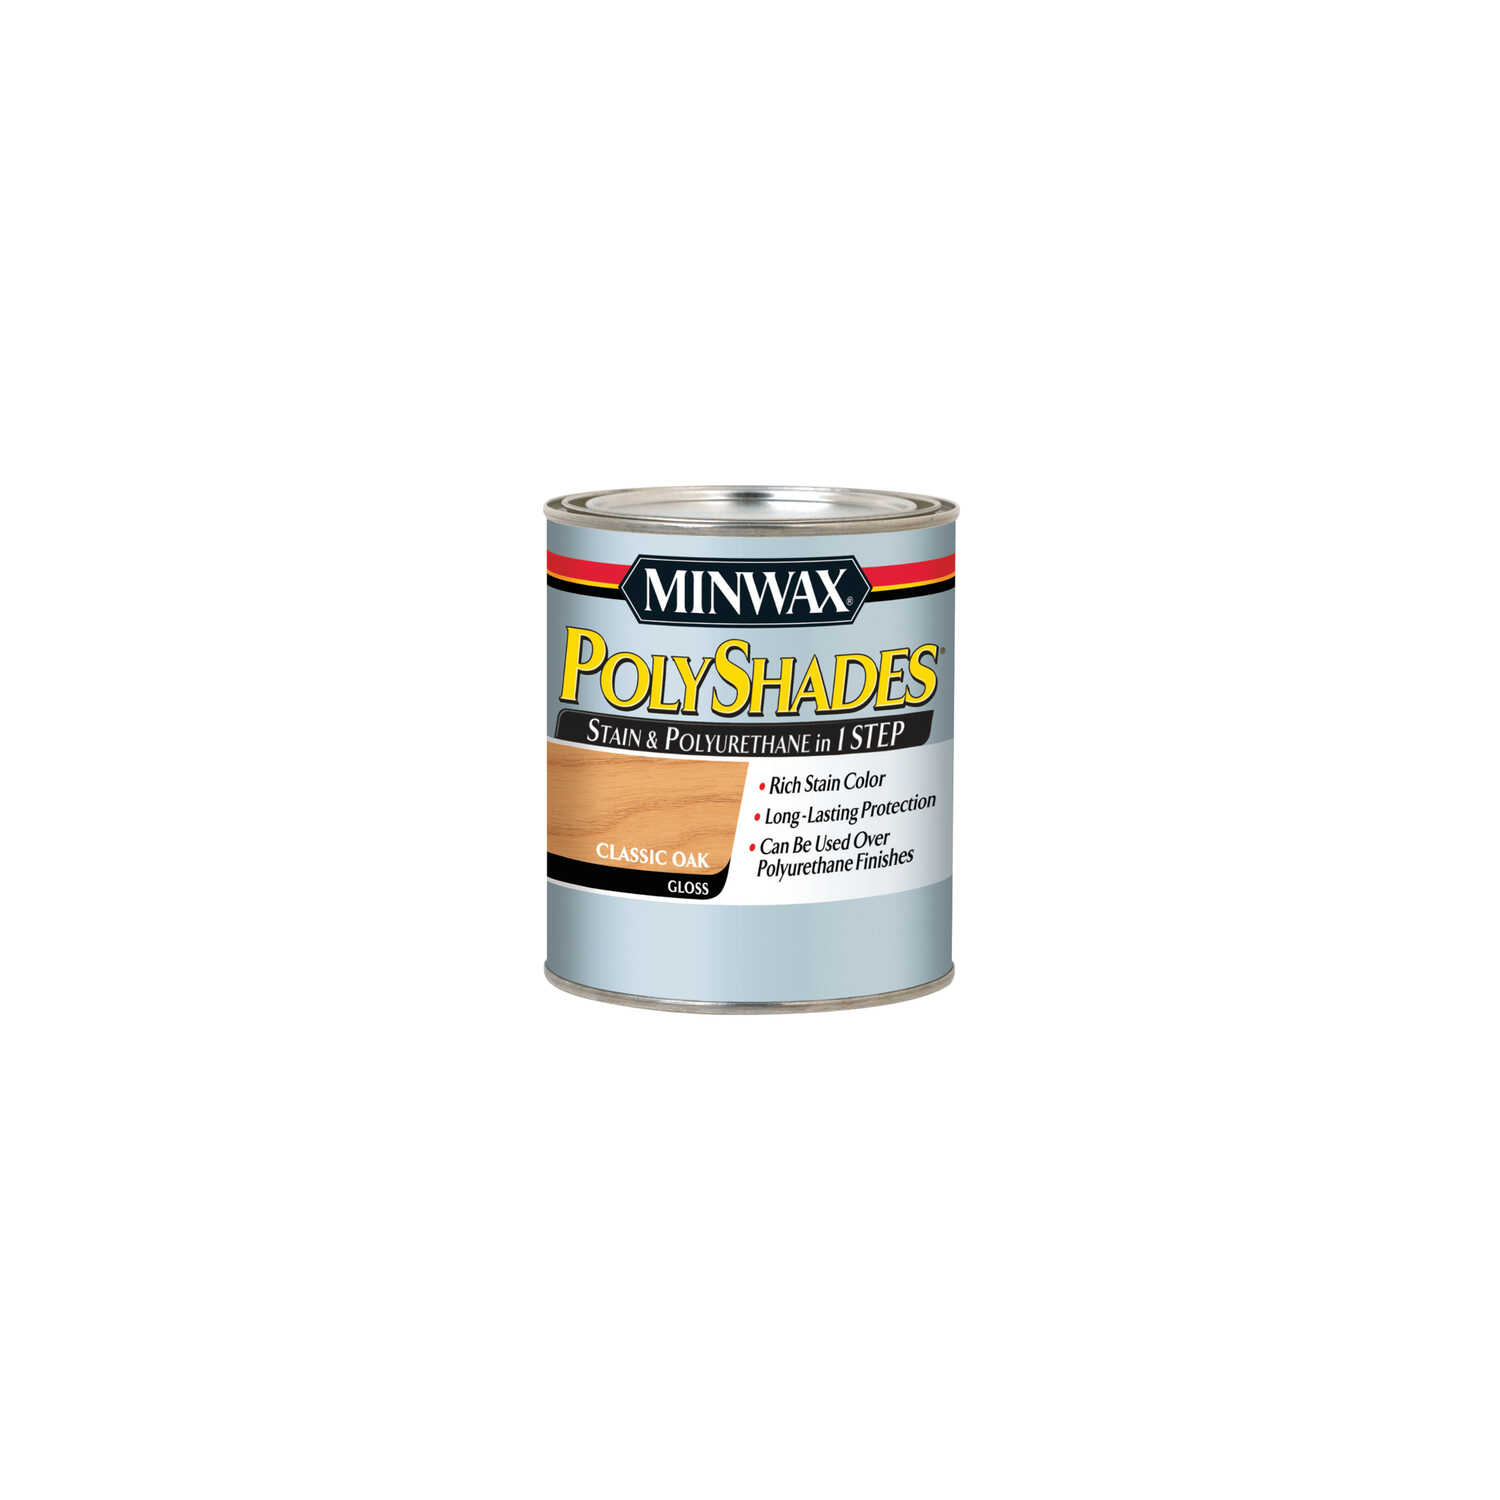 Minwax  PolyShades  Semi-Transparent  Gloss  Classic Oak  Oil-Based  Stain  0.5 pt.